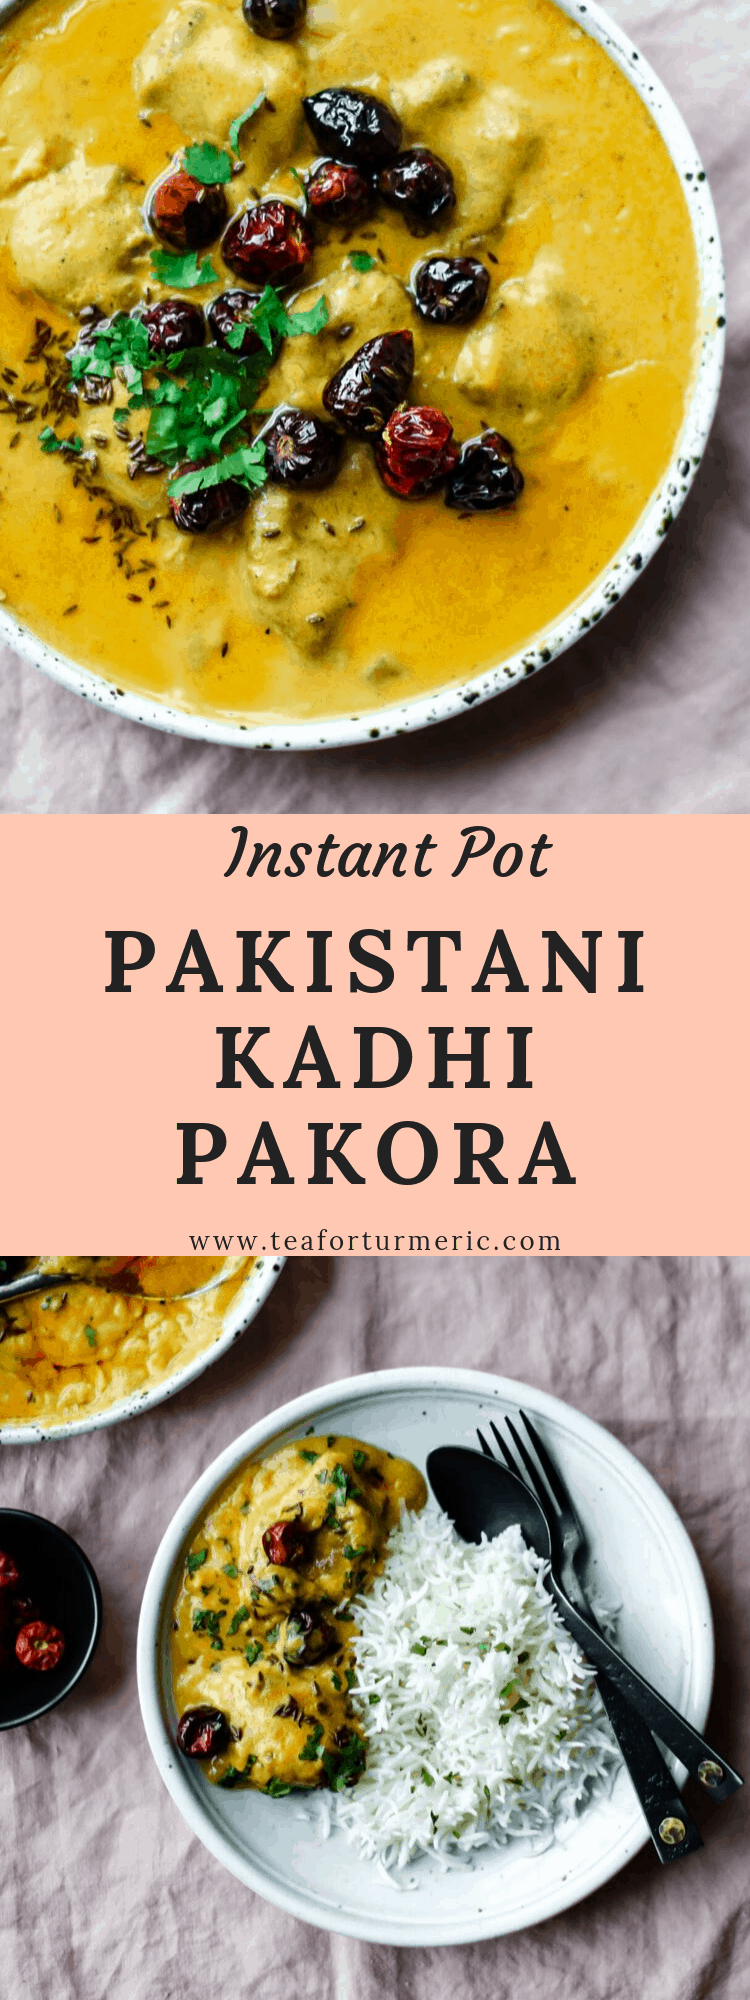 Instant Pot Kadhi Pakora! Instead of hours over the stove, this classic Kadhi needs 30 minutes in the Instant Pot. This recipe uses accessible ingredients and has a shortened cook time but remains true to the flavors of traditional Pakistani and North Indian Kadhi.